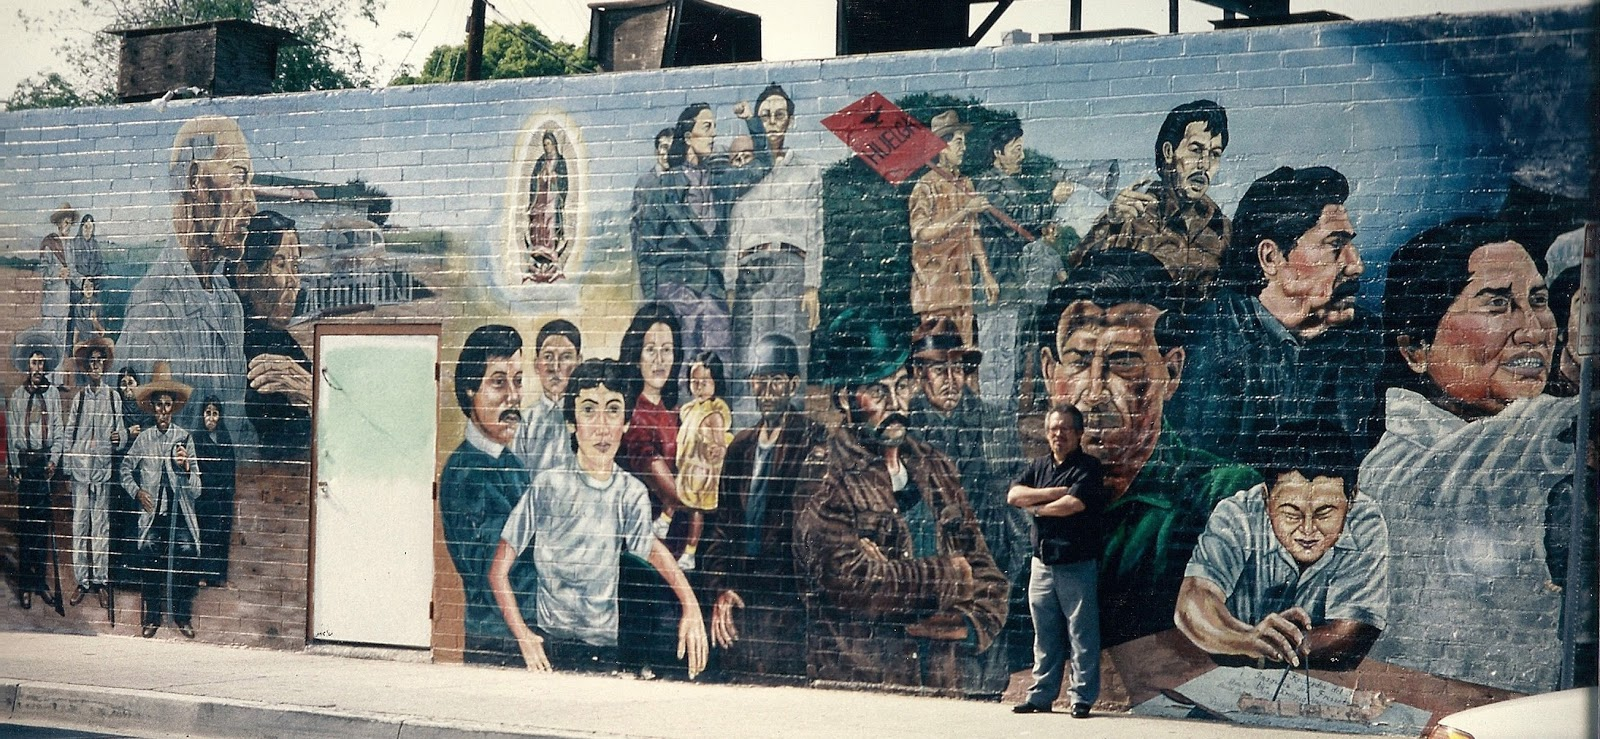 an analysis of the artist who painted the cesar chavez mural emigdio vazquez Emigdio vasquez painted dozens of murals in central orange county sadly, many no longer exist but as part of @pstinla there's now an app that has 'em all.